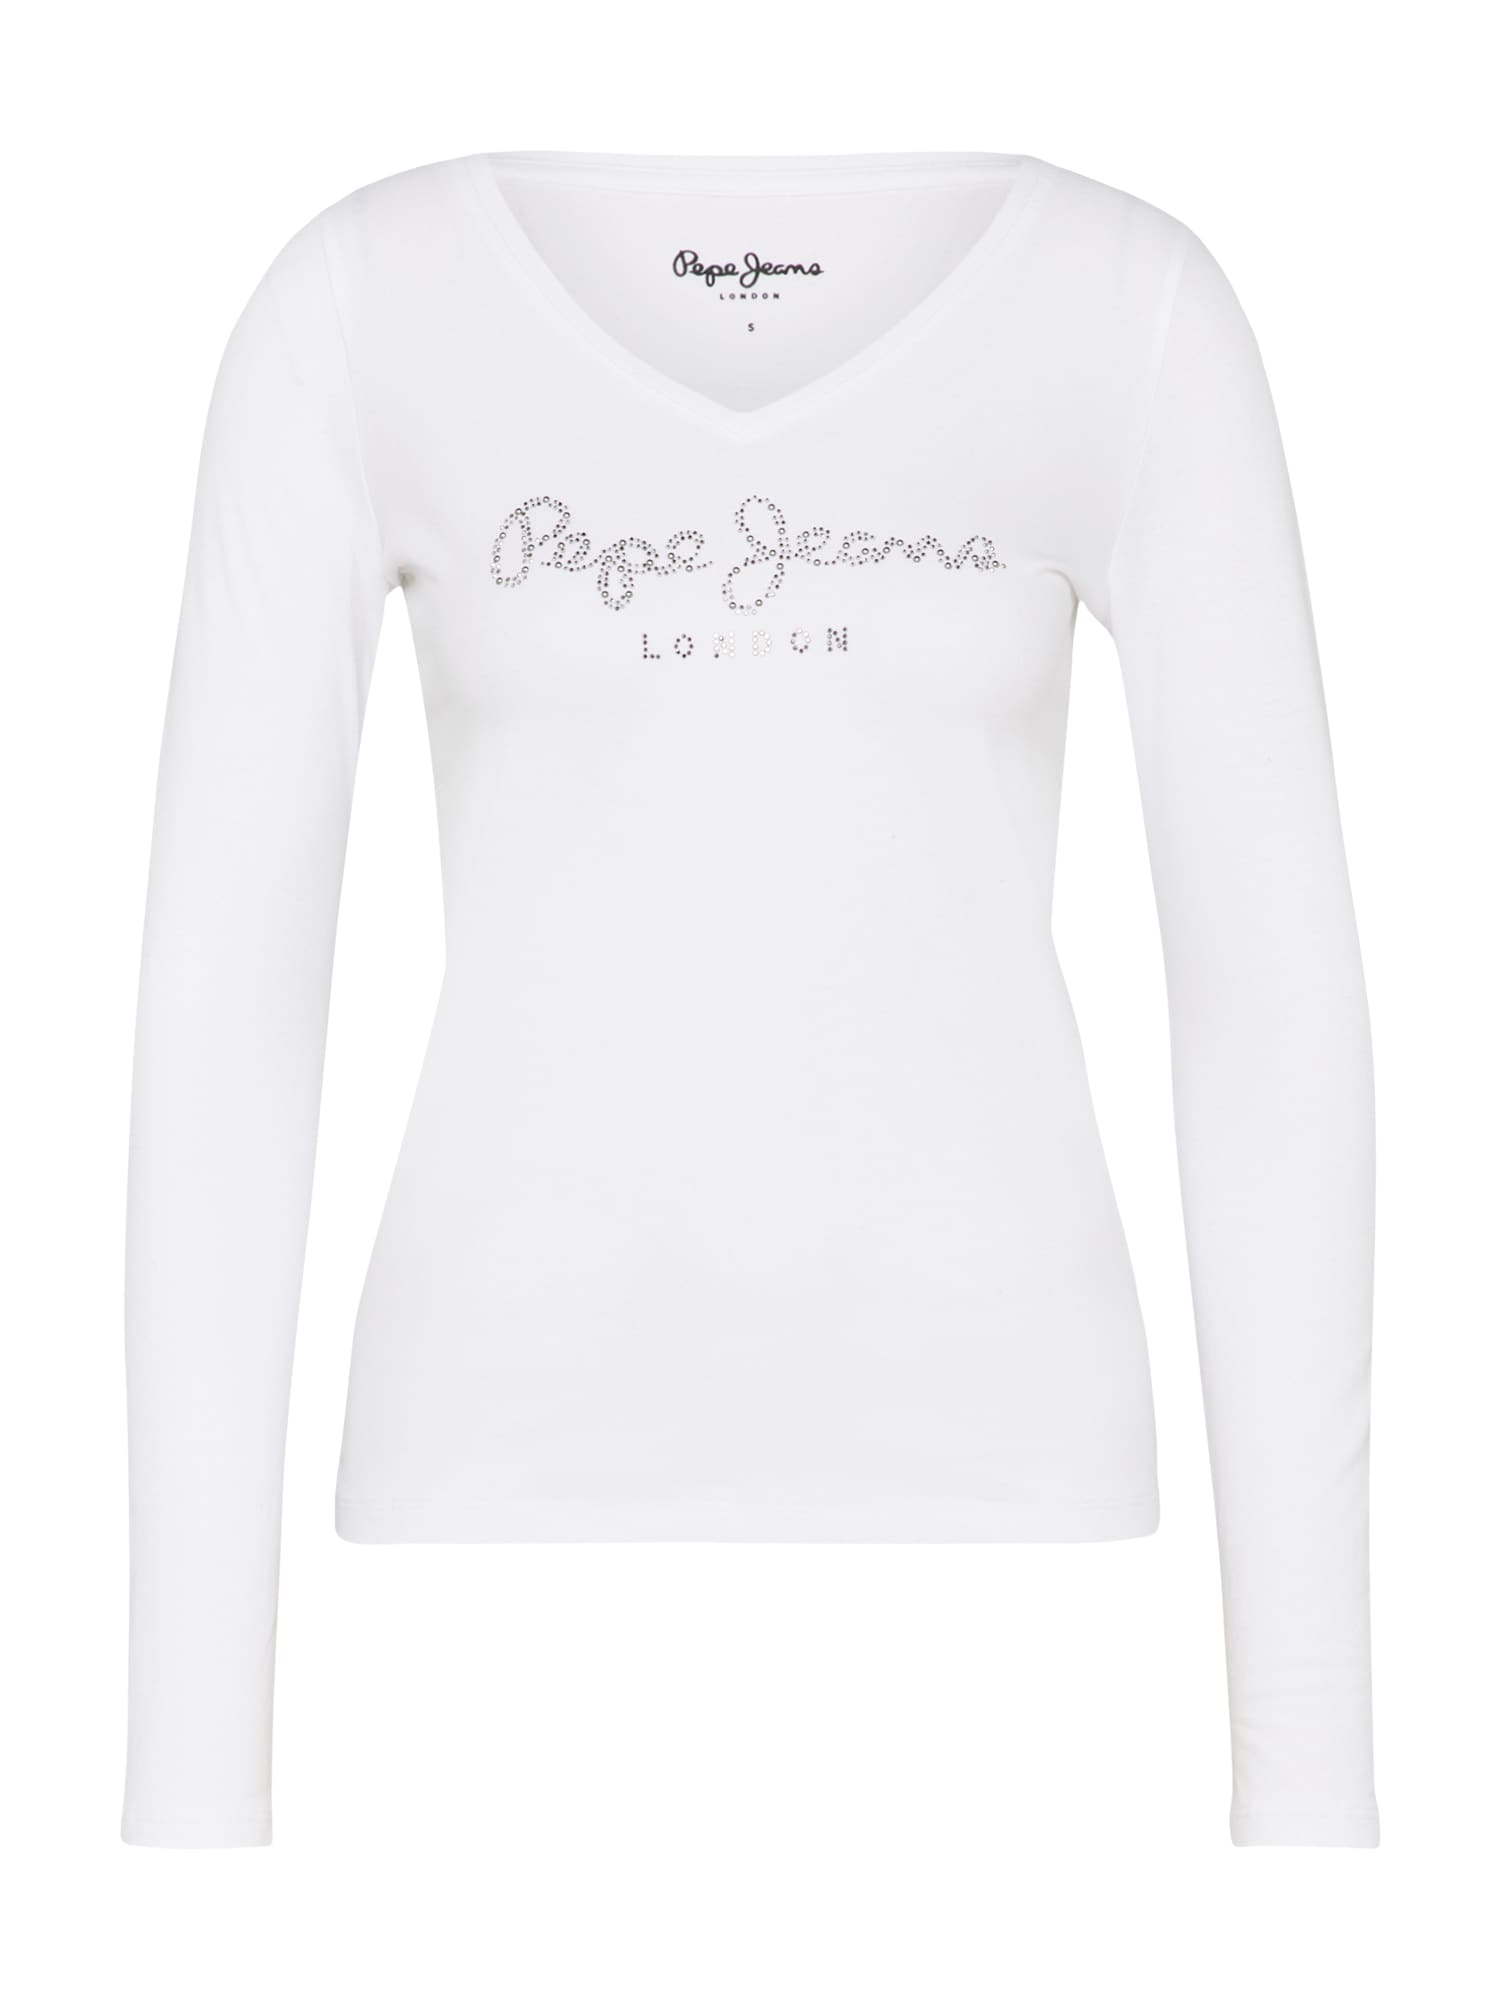 Pepe Jeans Dames Shirt MAR offwhite